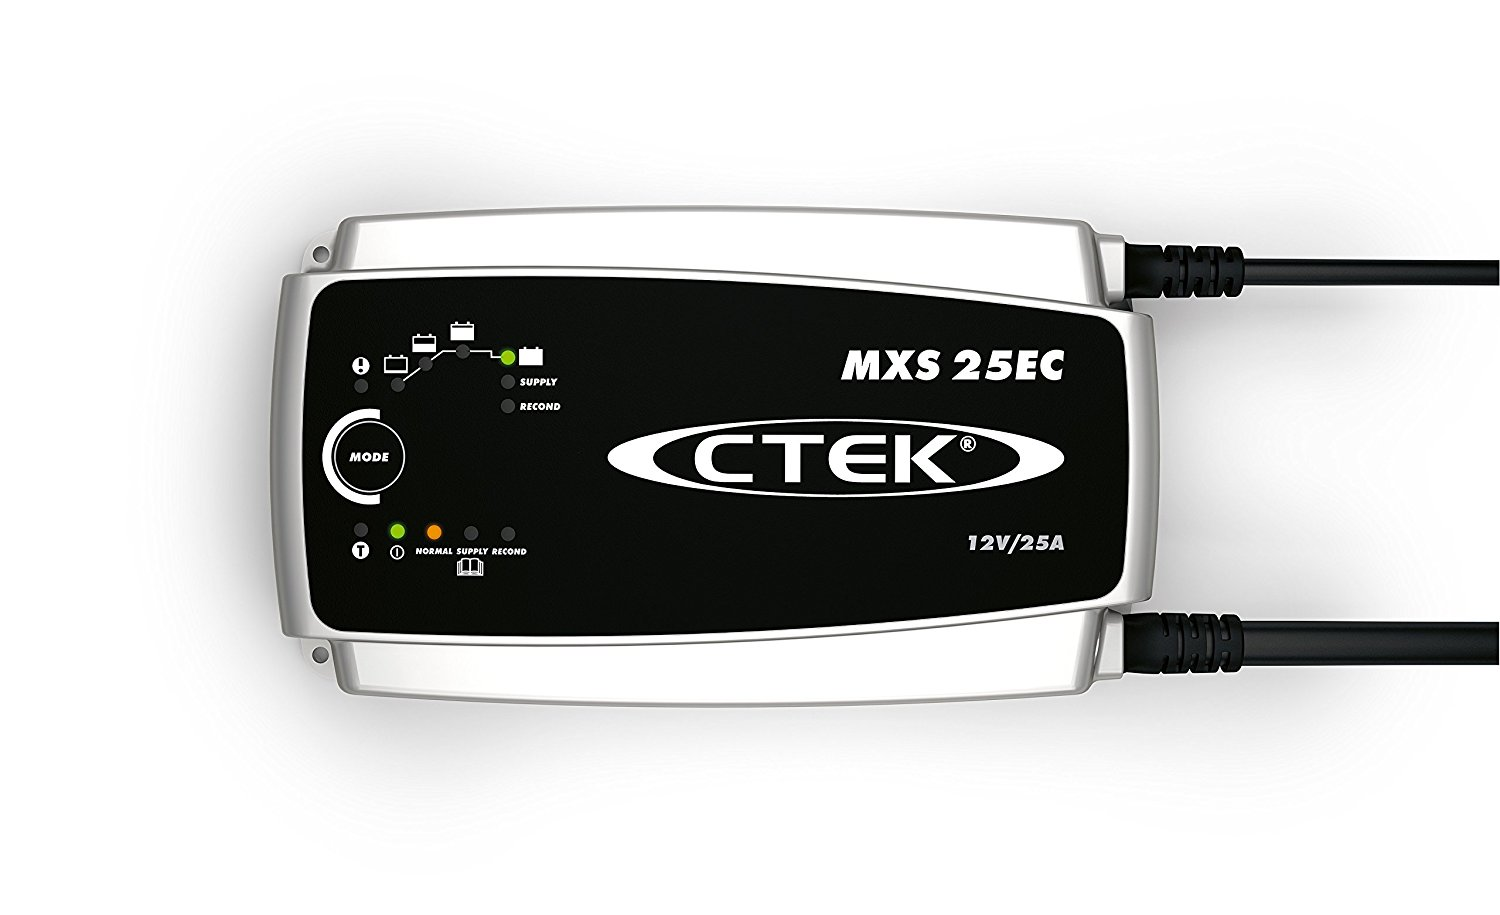 ctek mxs 25ec batterioplader 12v batteriladere. Black Bedroom Furniture Sets. Home Design Ideas